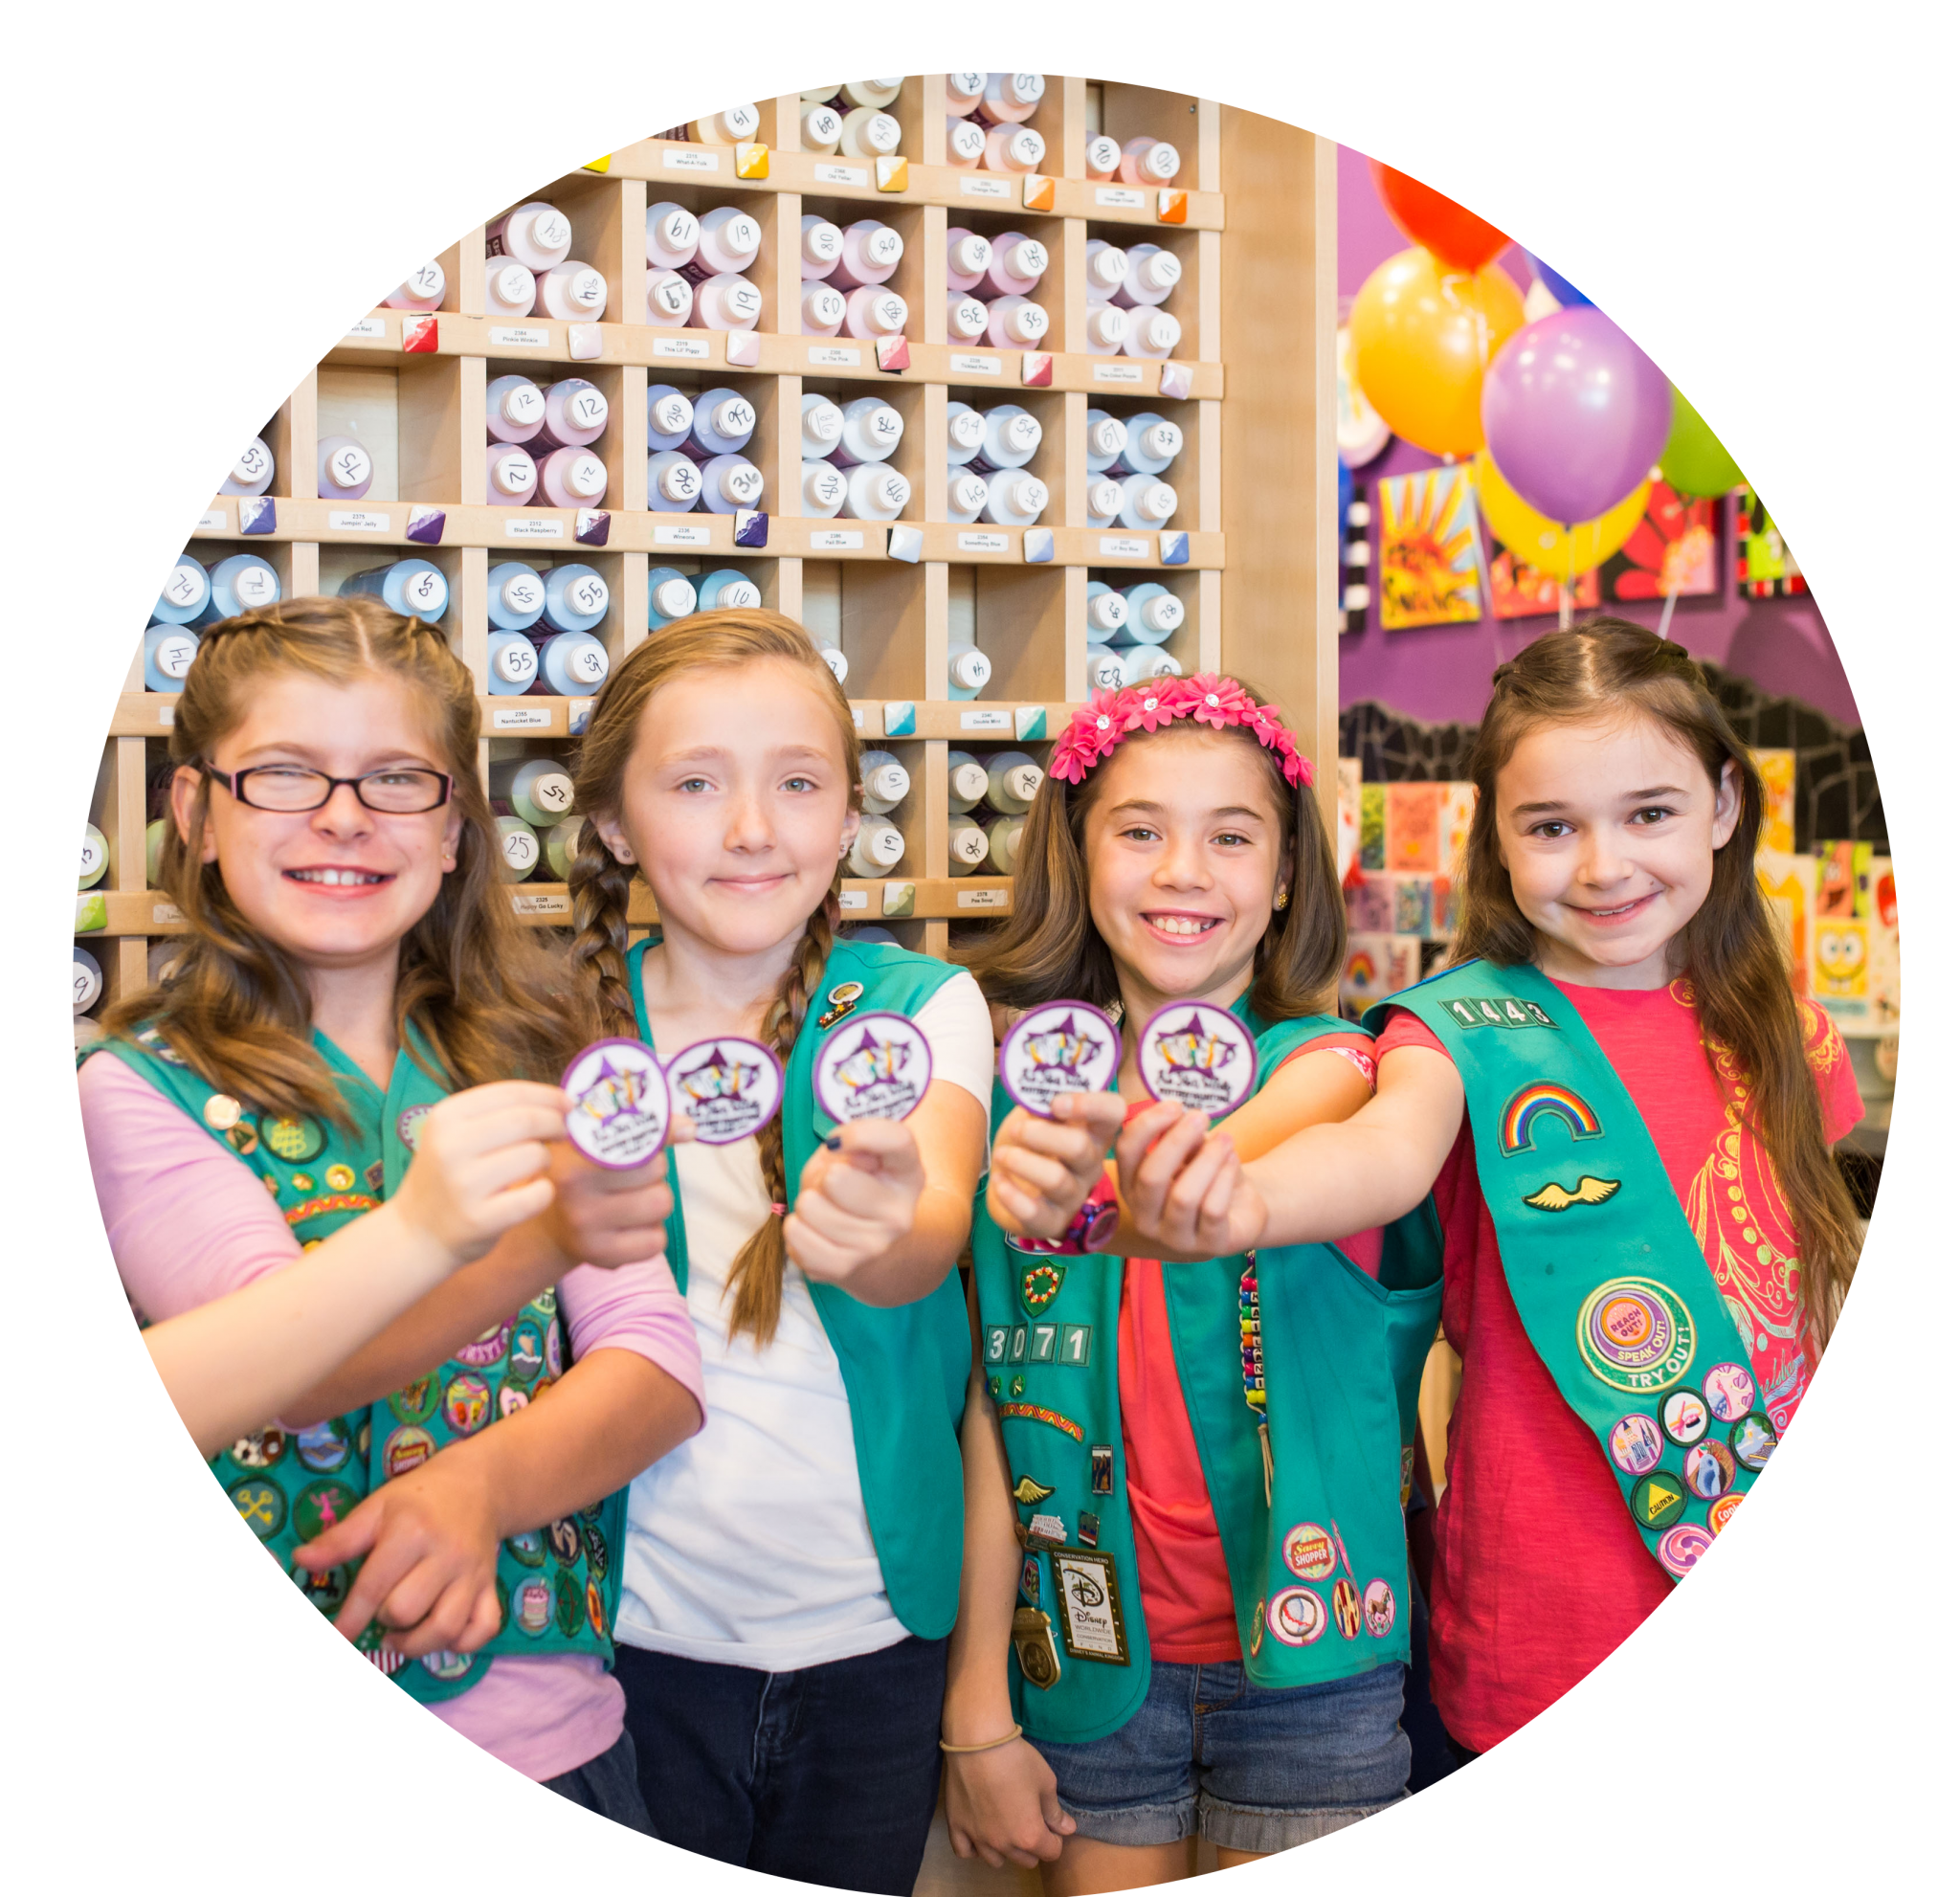 Team Building For Junior Girl Scouts